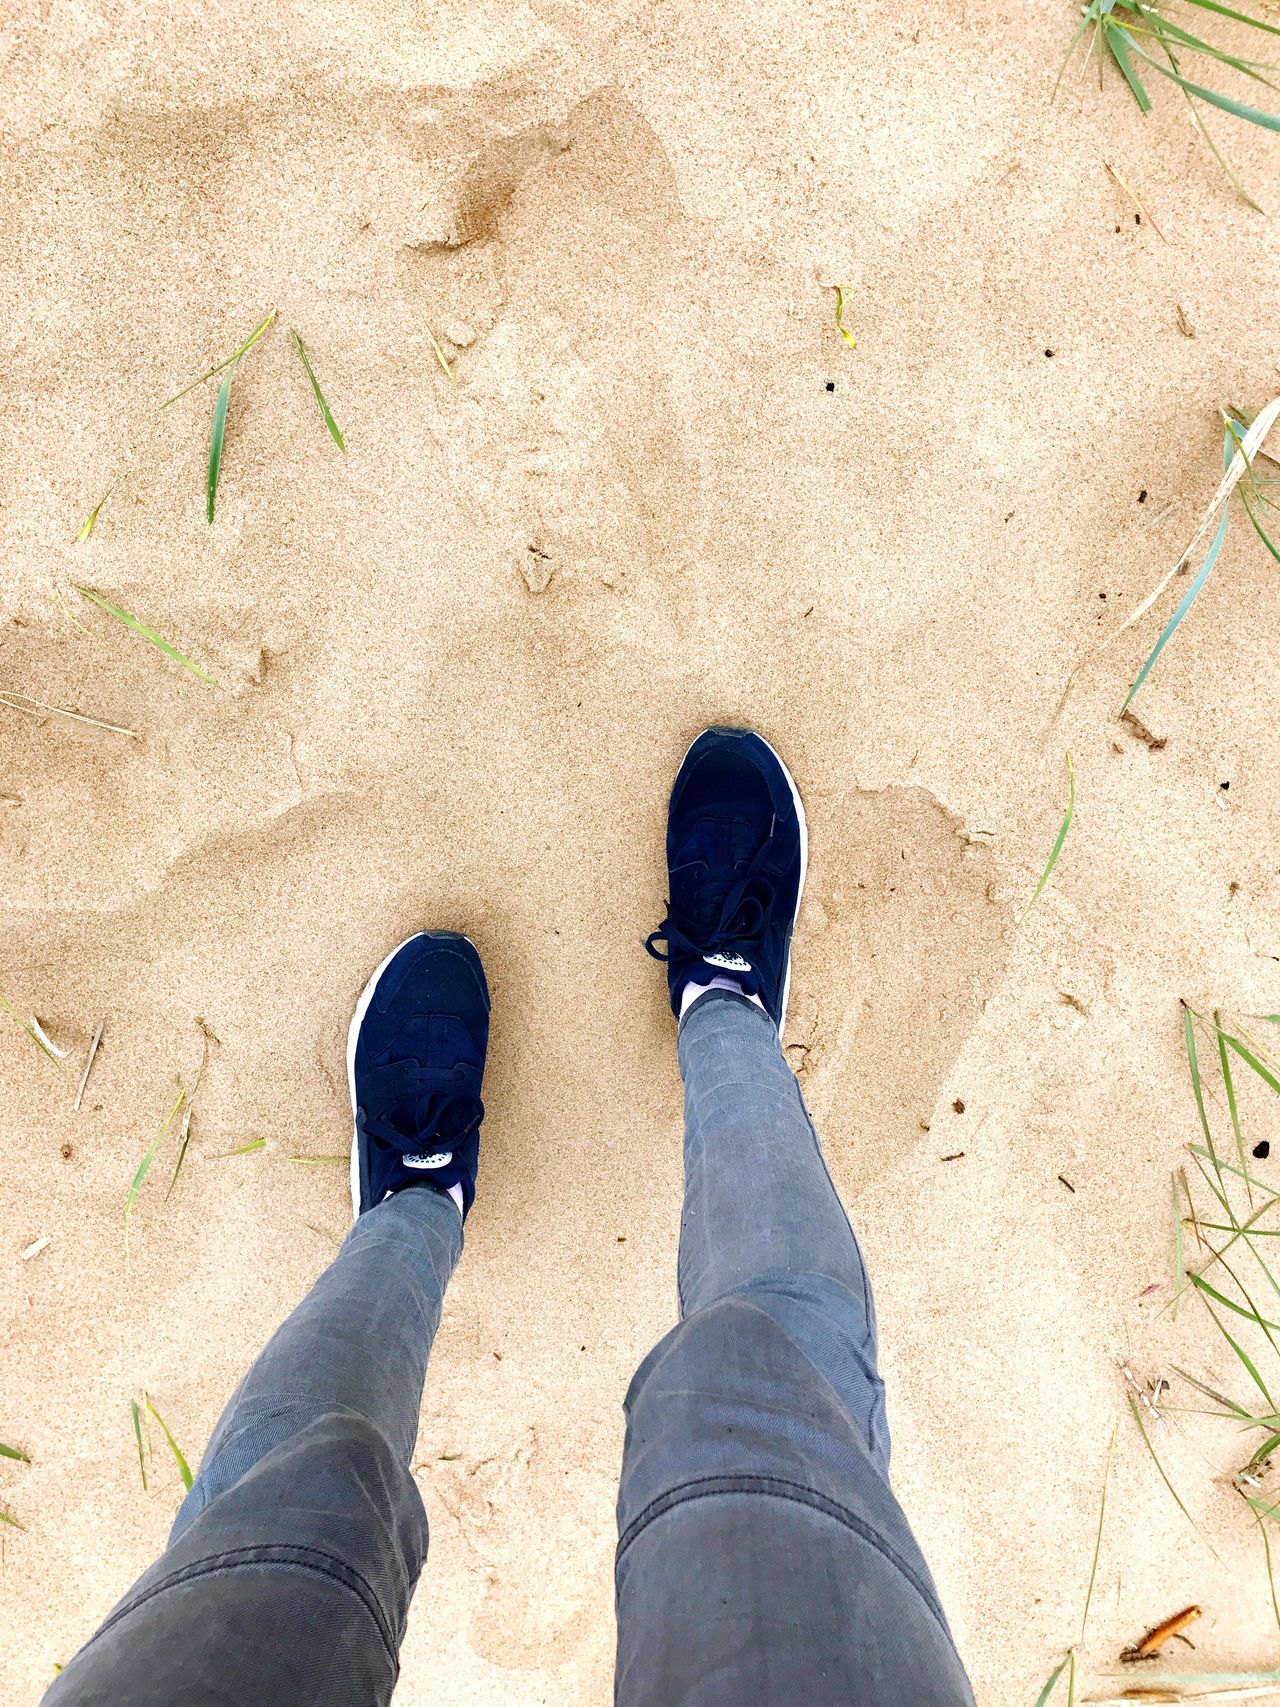 Shoe Standing Human Leg Low Section Personal Perspective Human Body Part Day One Person Outdoors Sand Adult People Adults Only Beach Beauty In Nature Minimalism Sandy Sandy Beach